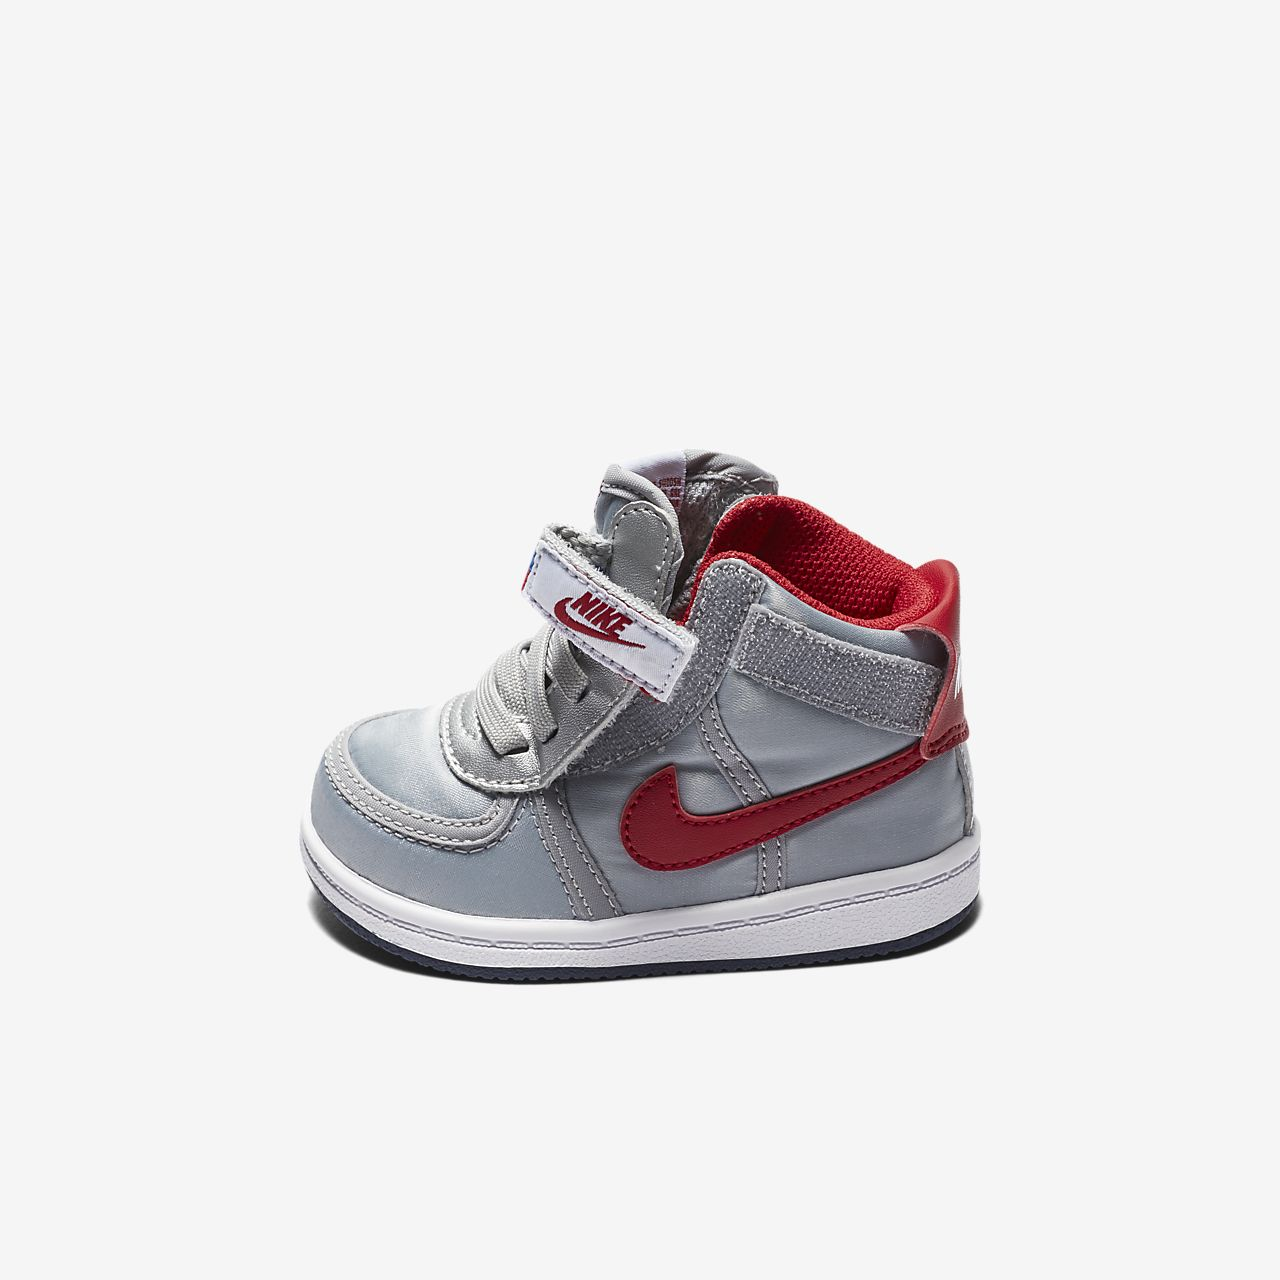 Nike Woman Vandal Low White / Red! New!! Size 6 (NO00028)